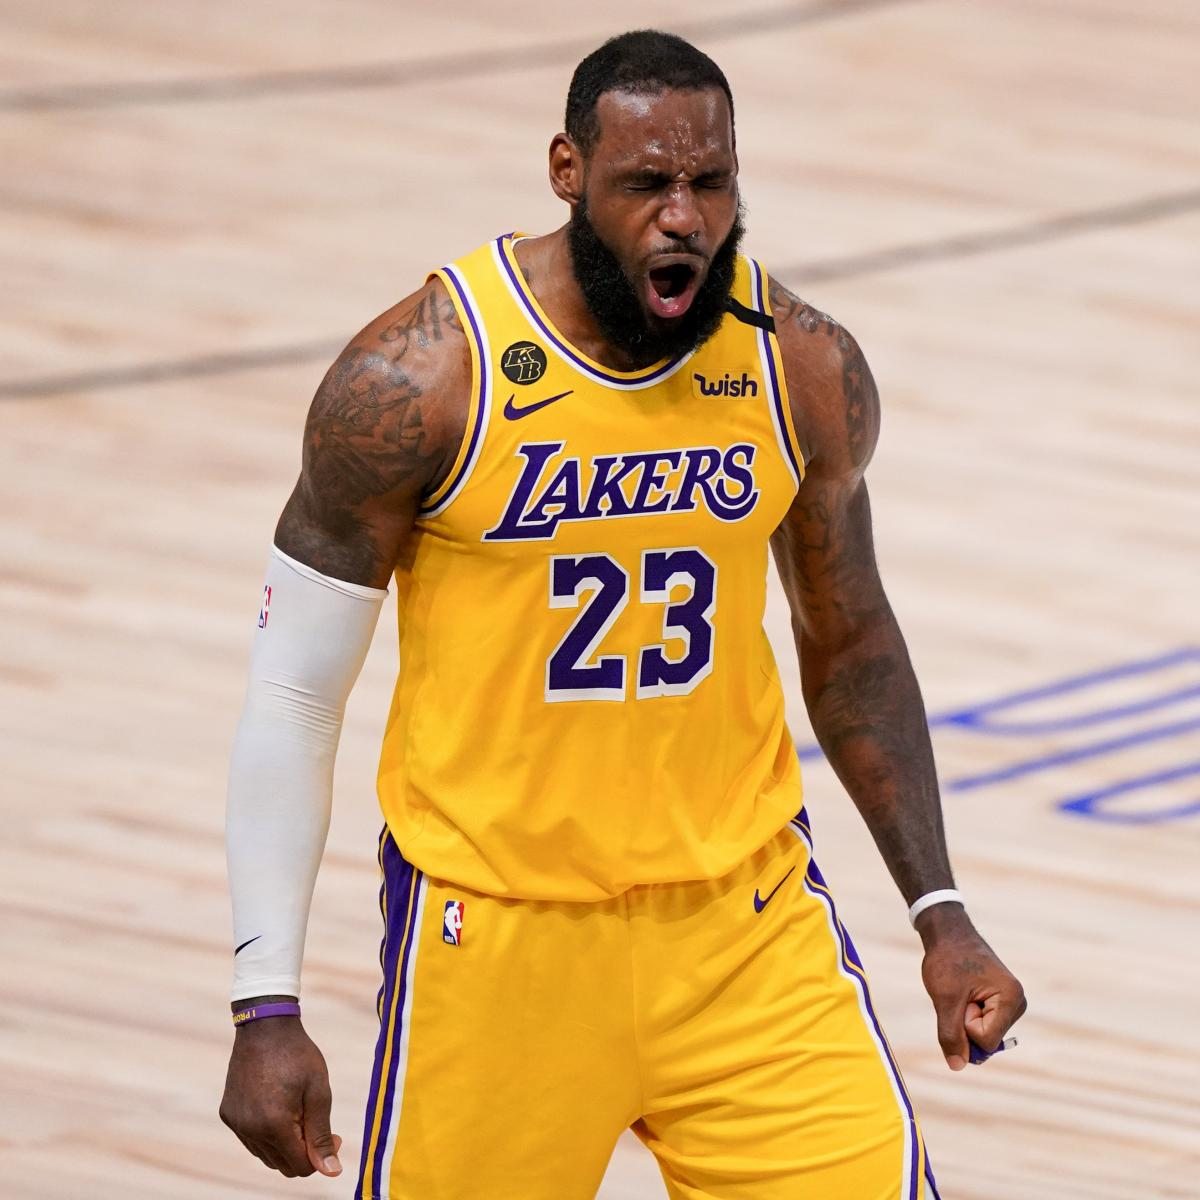 Lakers' Future Salary-Cap Space After LeBron James' $85M Contract Extension